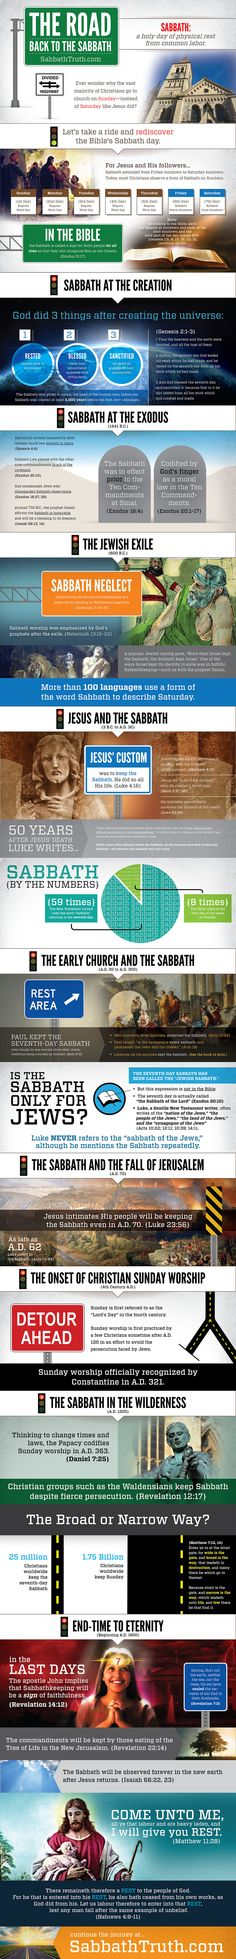 Sabbath or Sunday? Straight from the Bible, you decide which is true